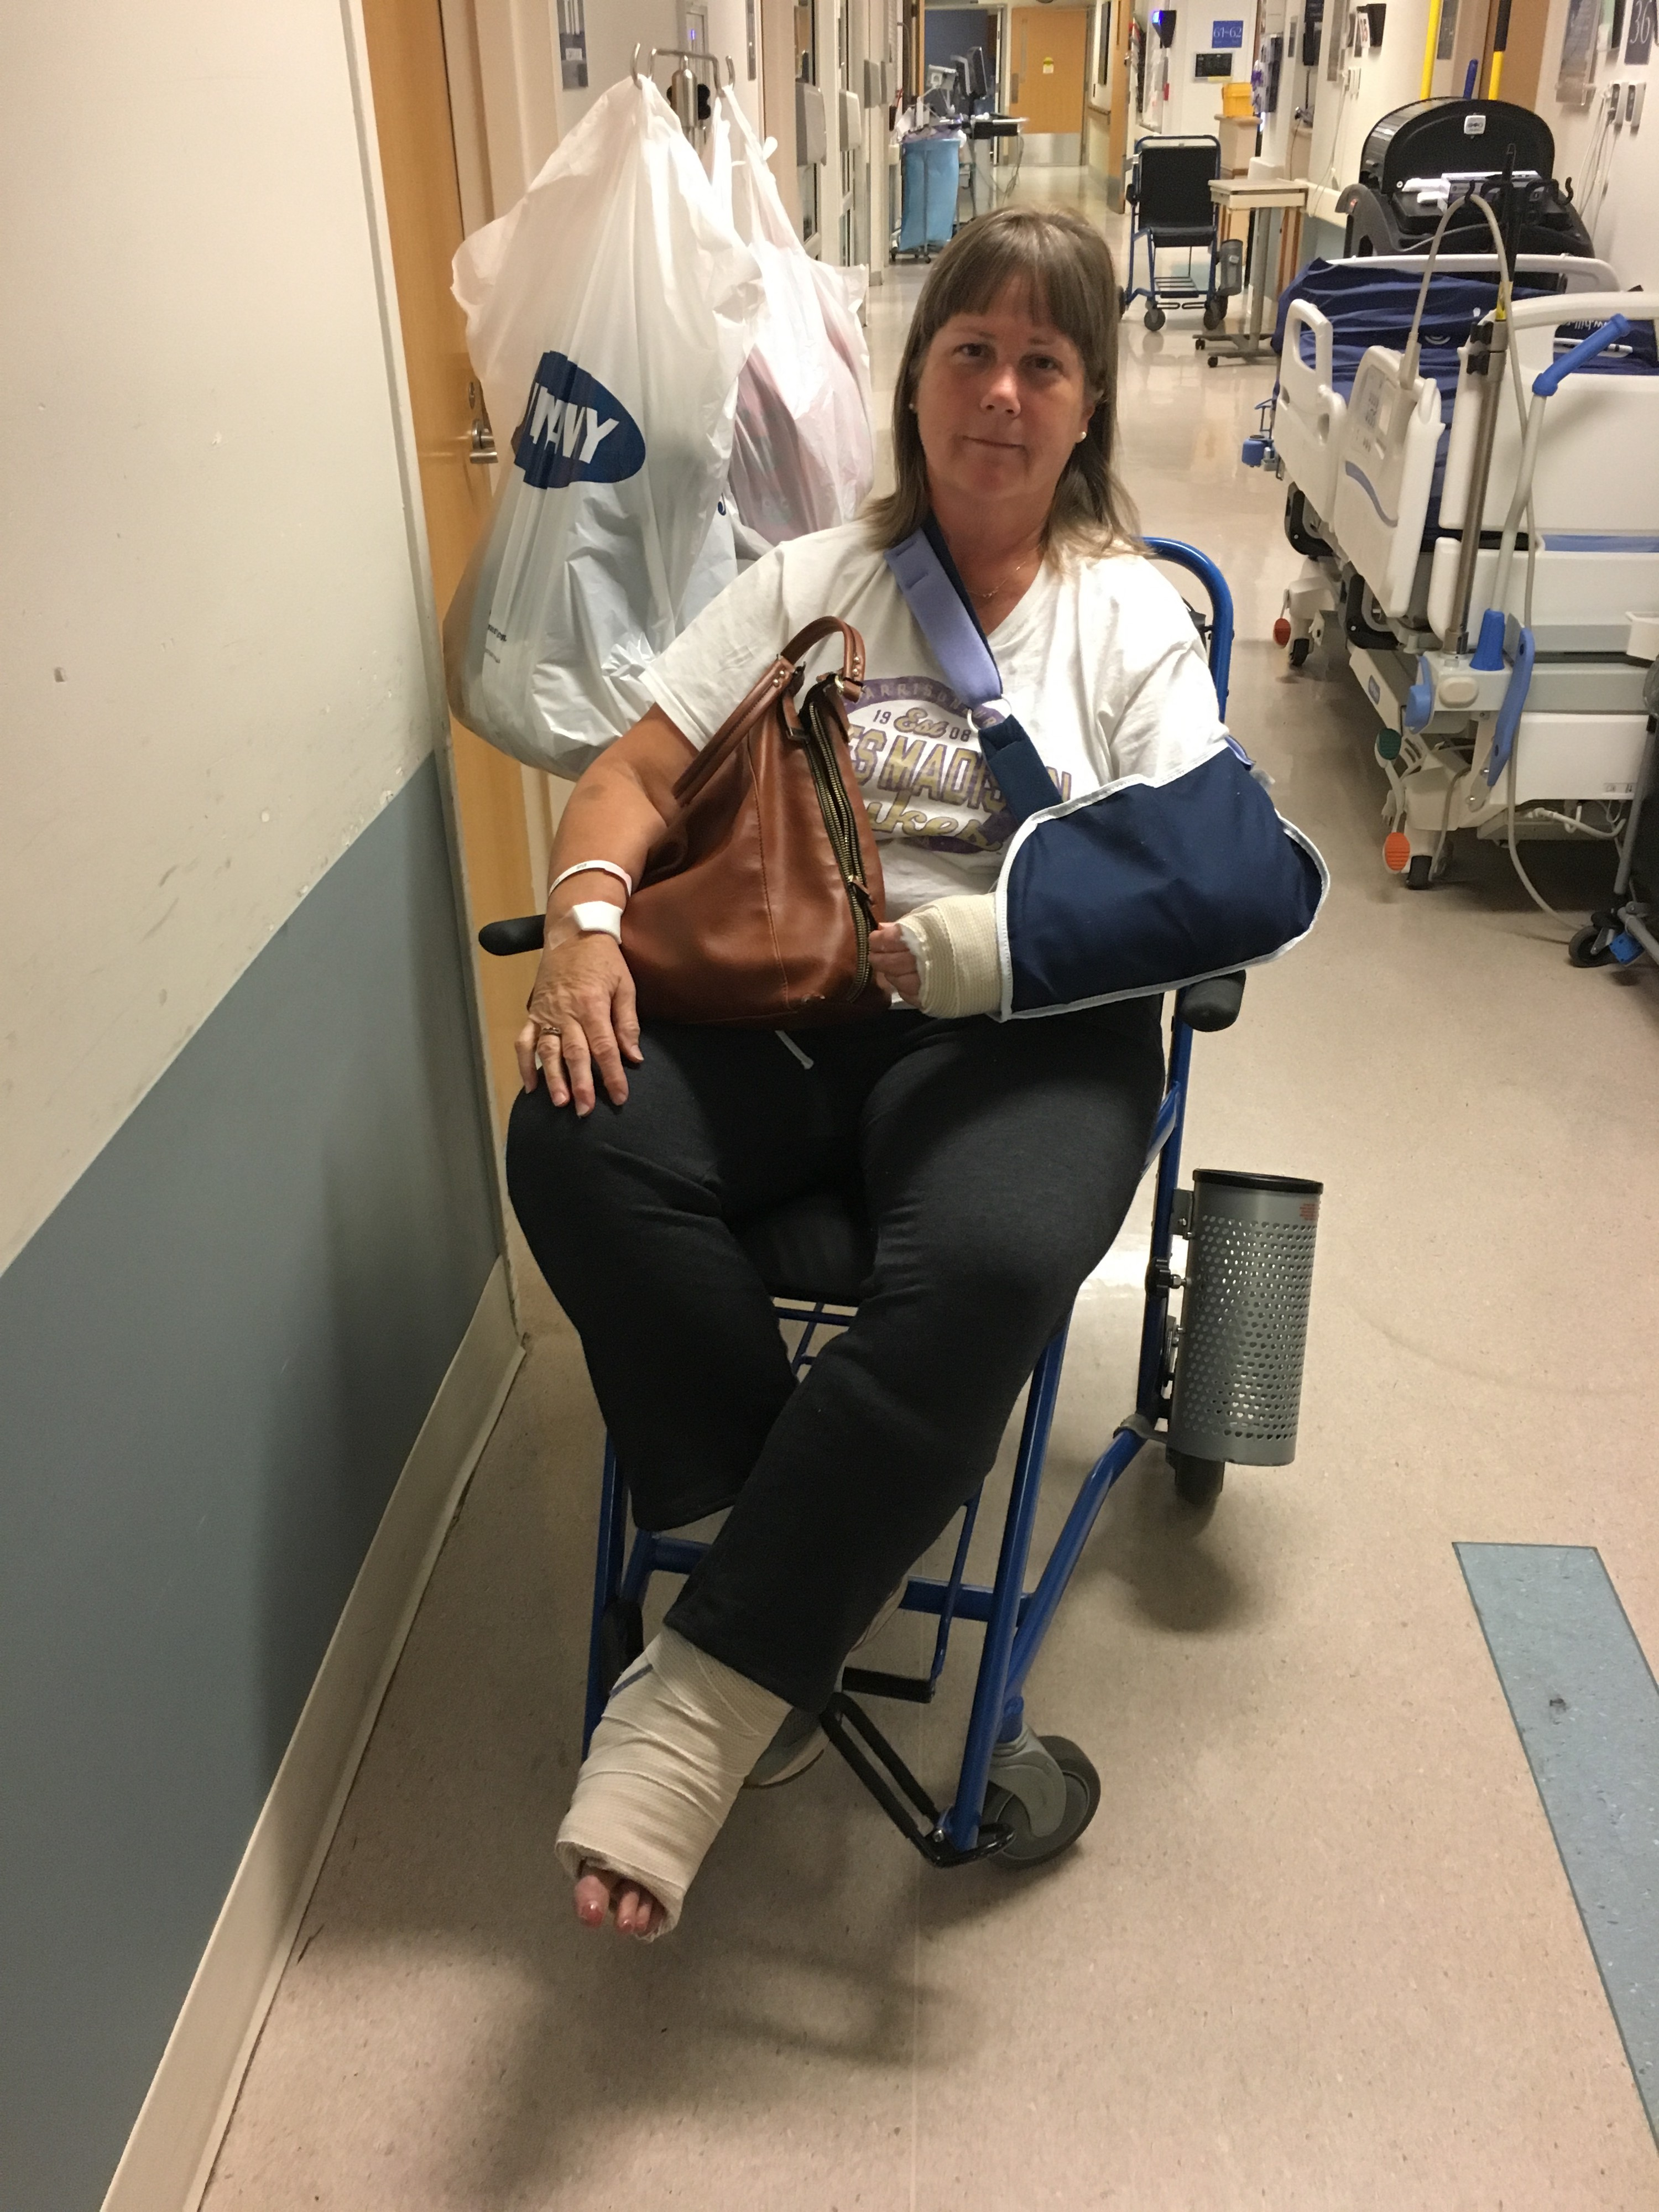 Interview #8: Bonnie Downey (Broken Ankle and Wrist)